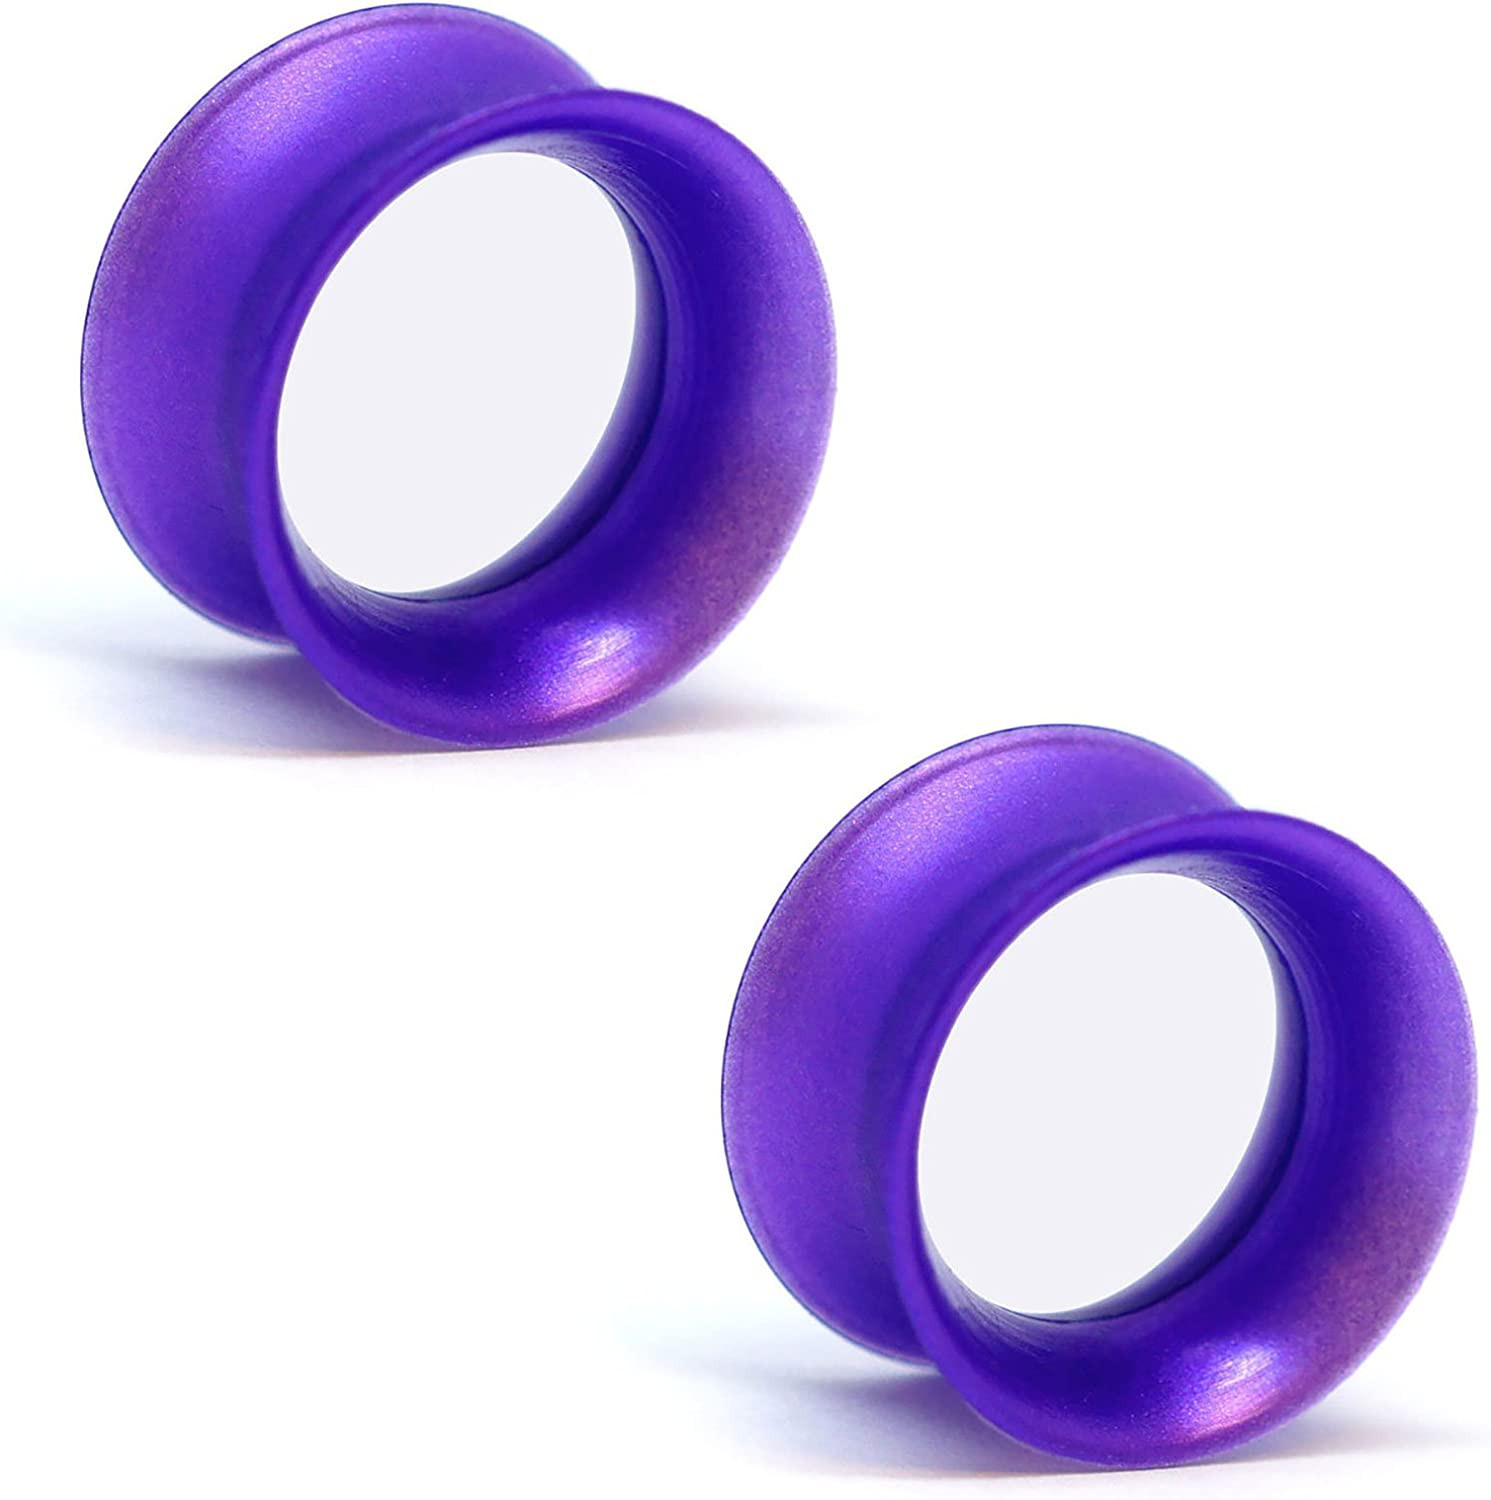 KAOS Brand: Pair of Opalescent Royal Purple Pearl Silicone Double Flared Skin Eyelets